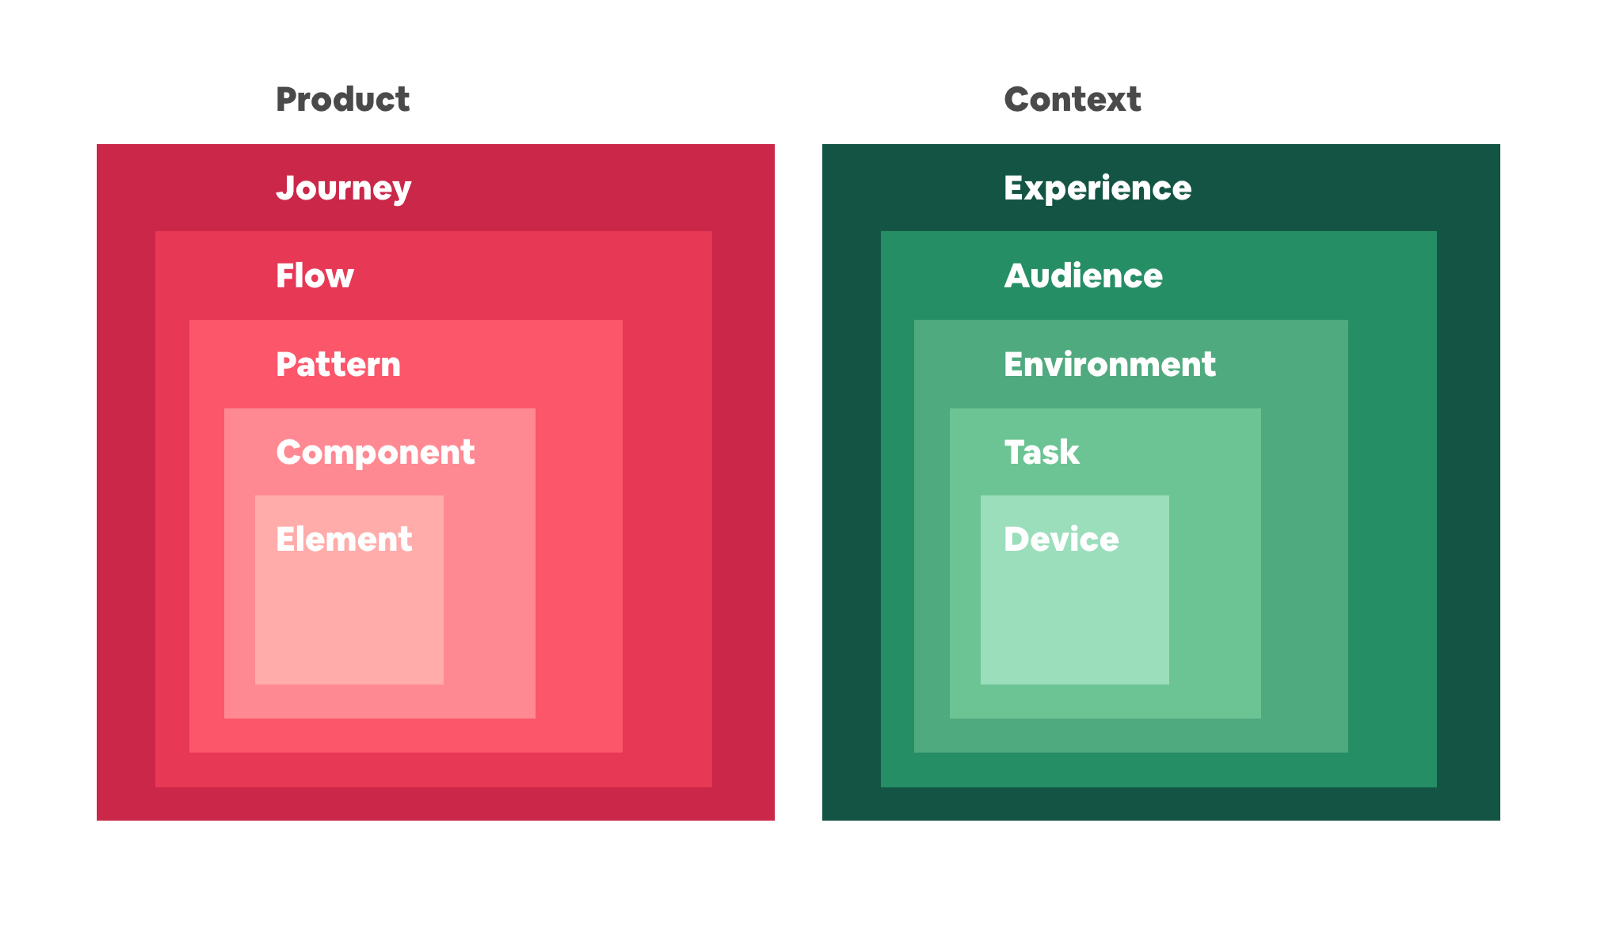 Systems should include both the parts of the product and the context gathered from an experience.